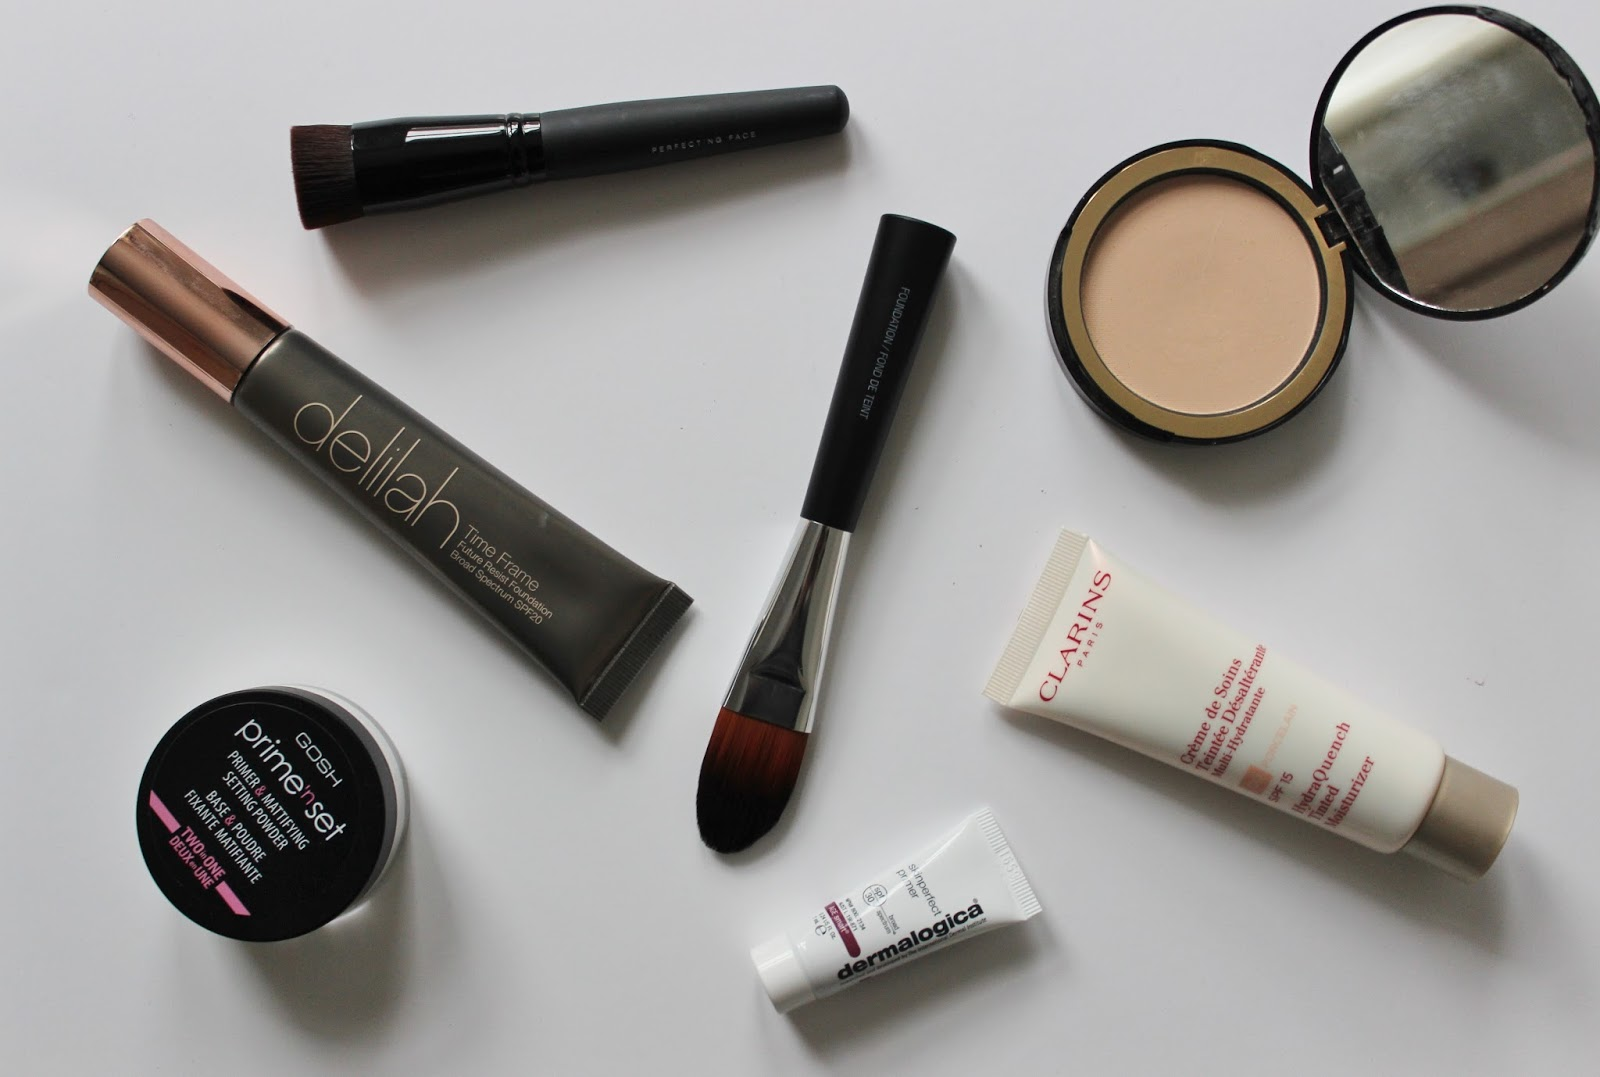 foundation, powders and makeup brushes